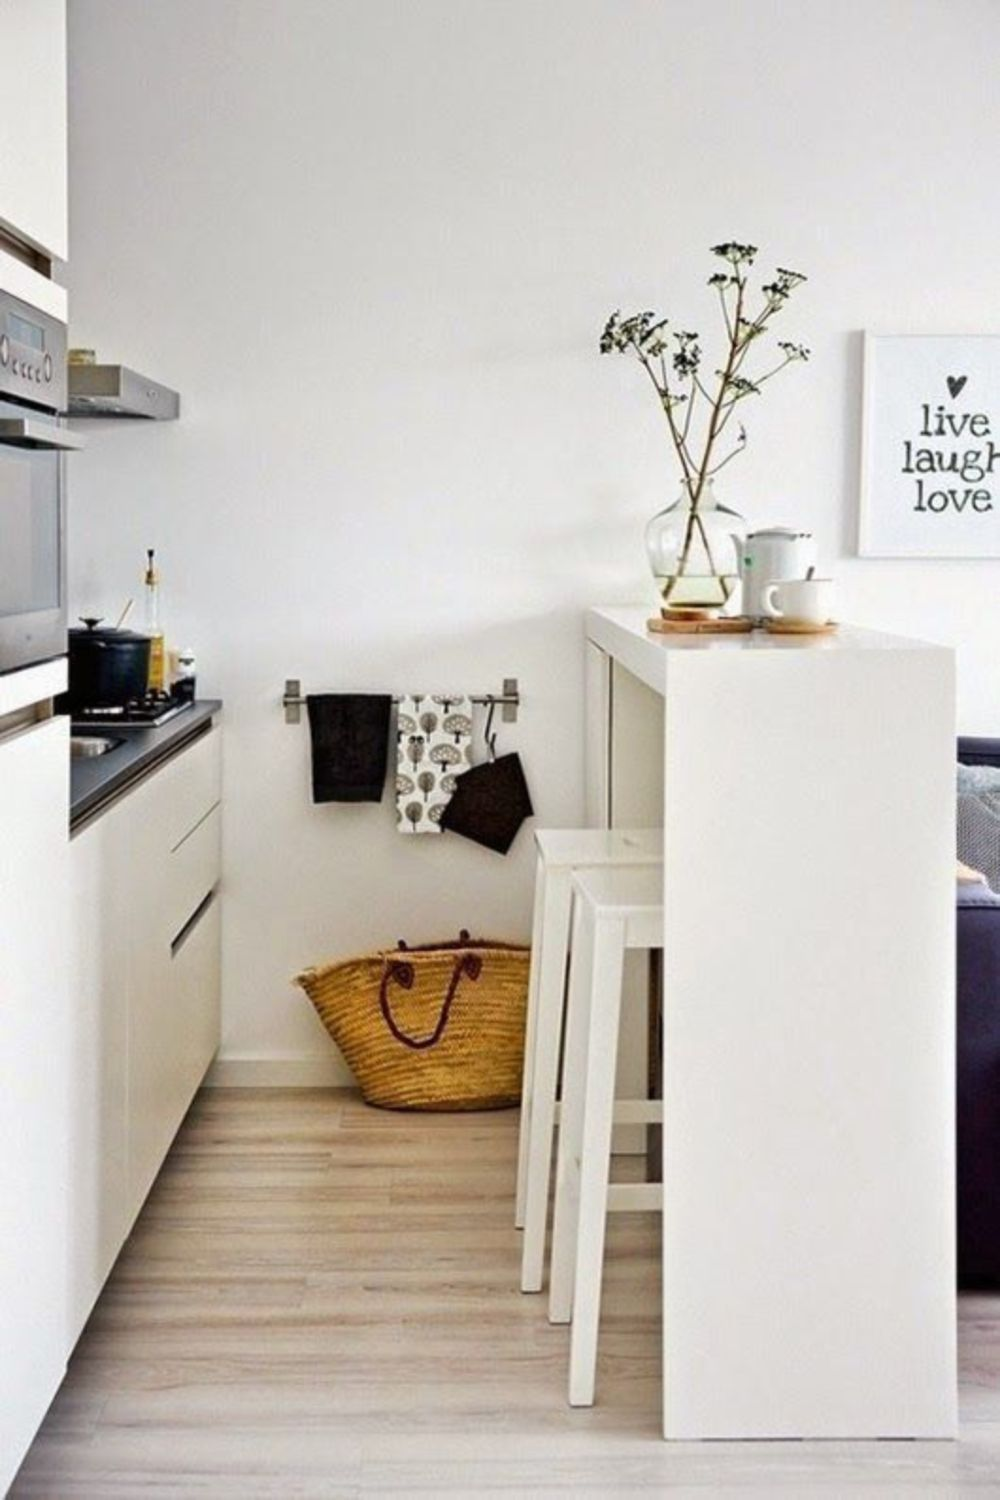 40 Charming Apartment Decor Ideas For Small Space Small Spaces . Live Laugh  Love Kitchen ...